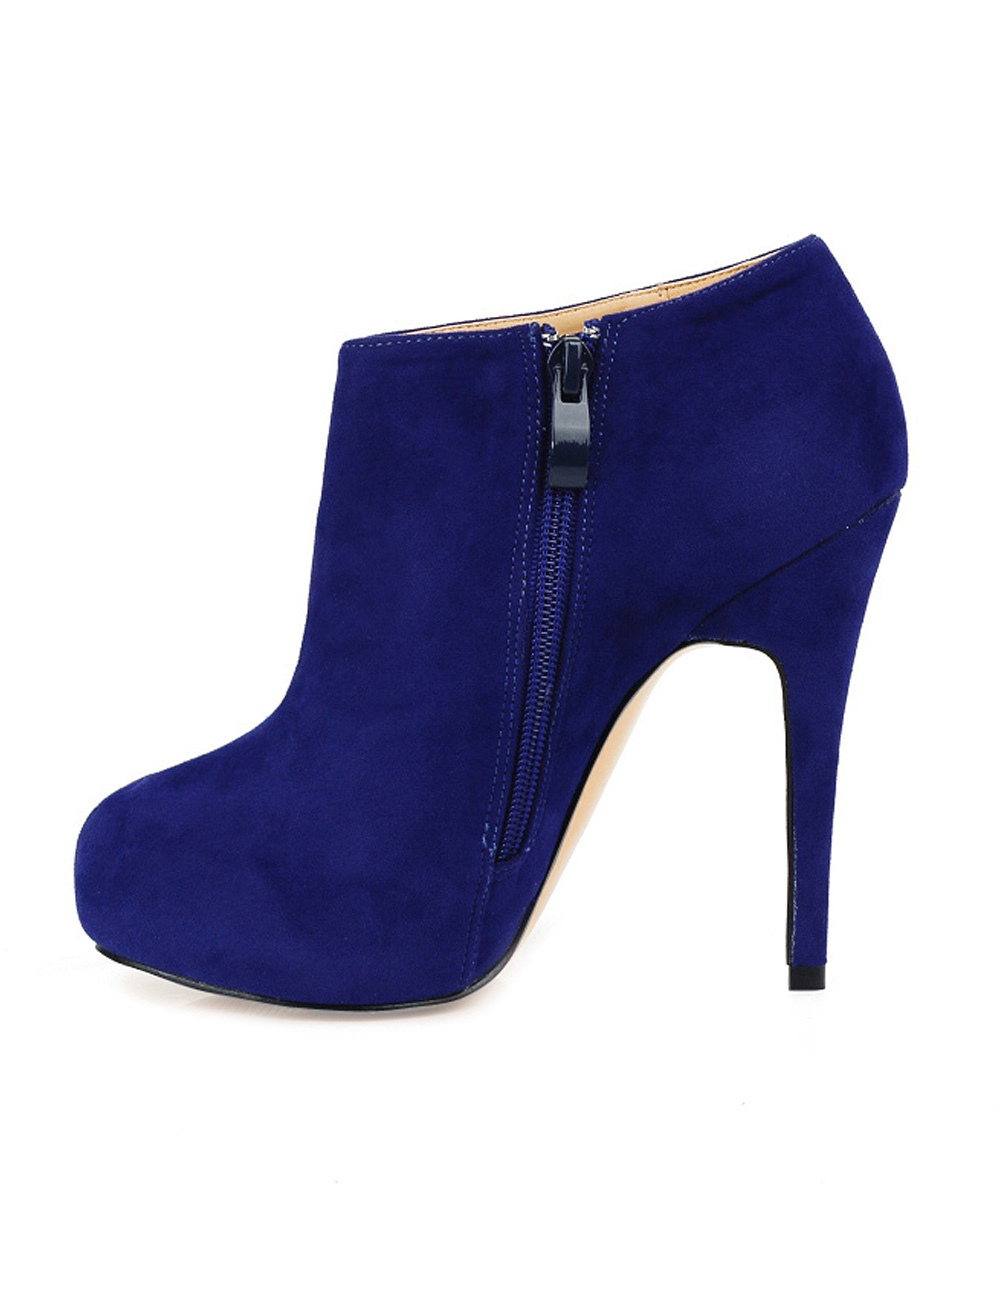 Blue Zip Closure Stiletto High Heel Ankle Boots Milanoo Com